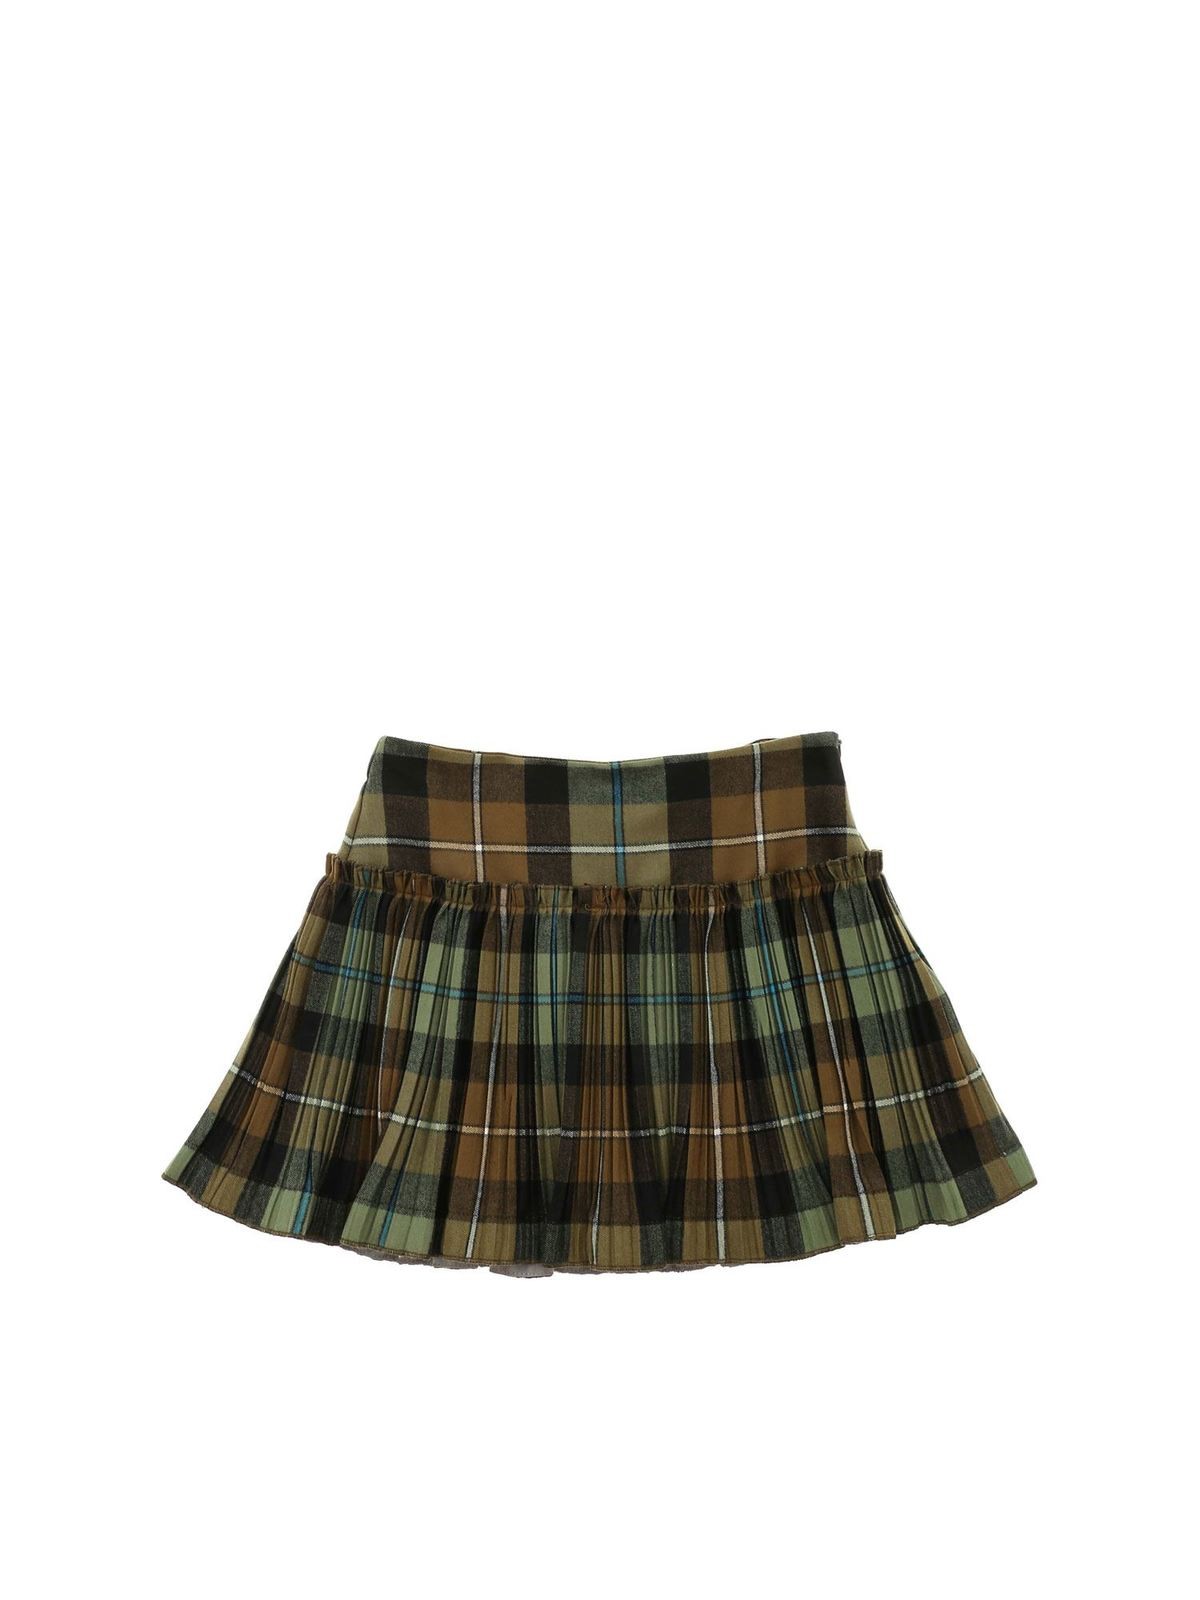 IL GUFO CHECK PRINTED SKIRT IN SHADES OF GREEN